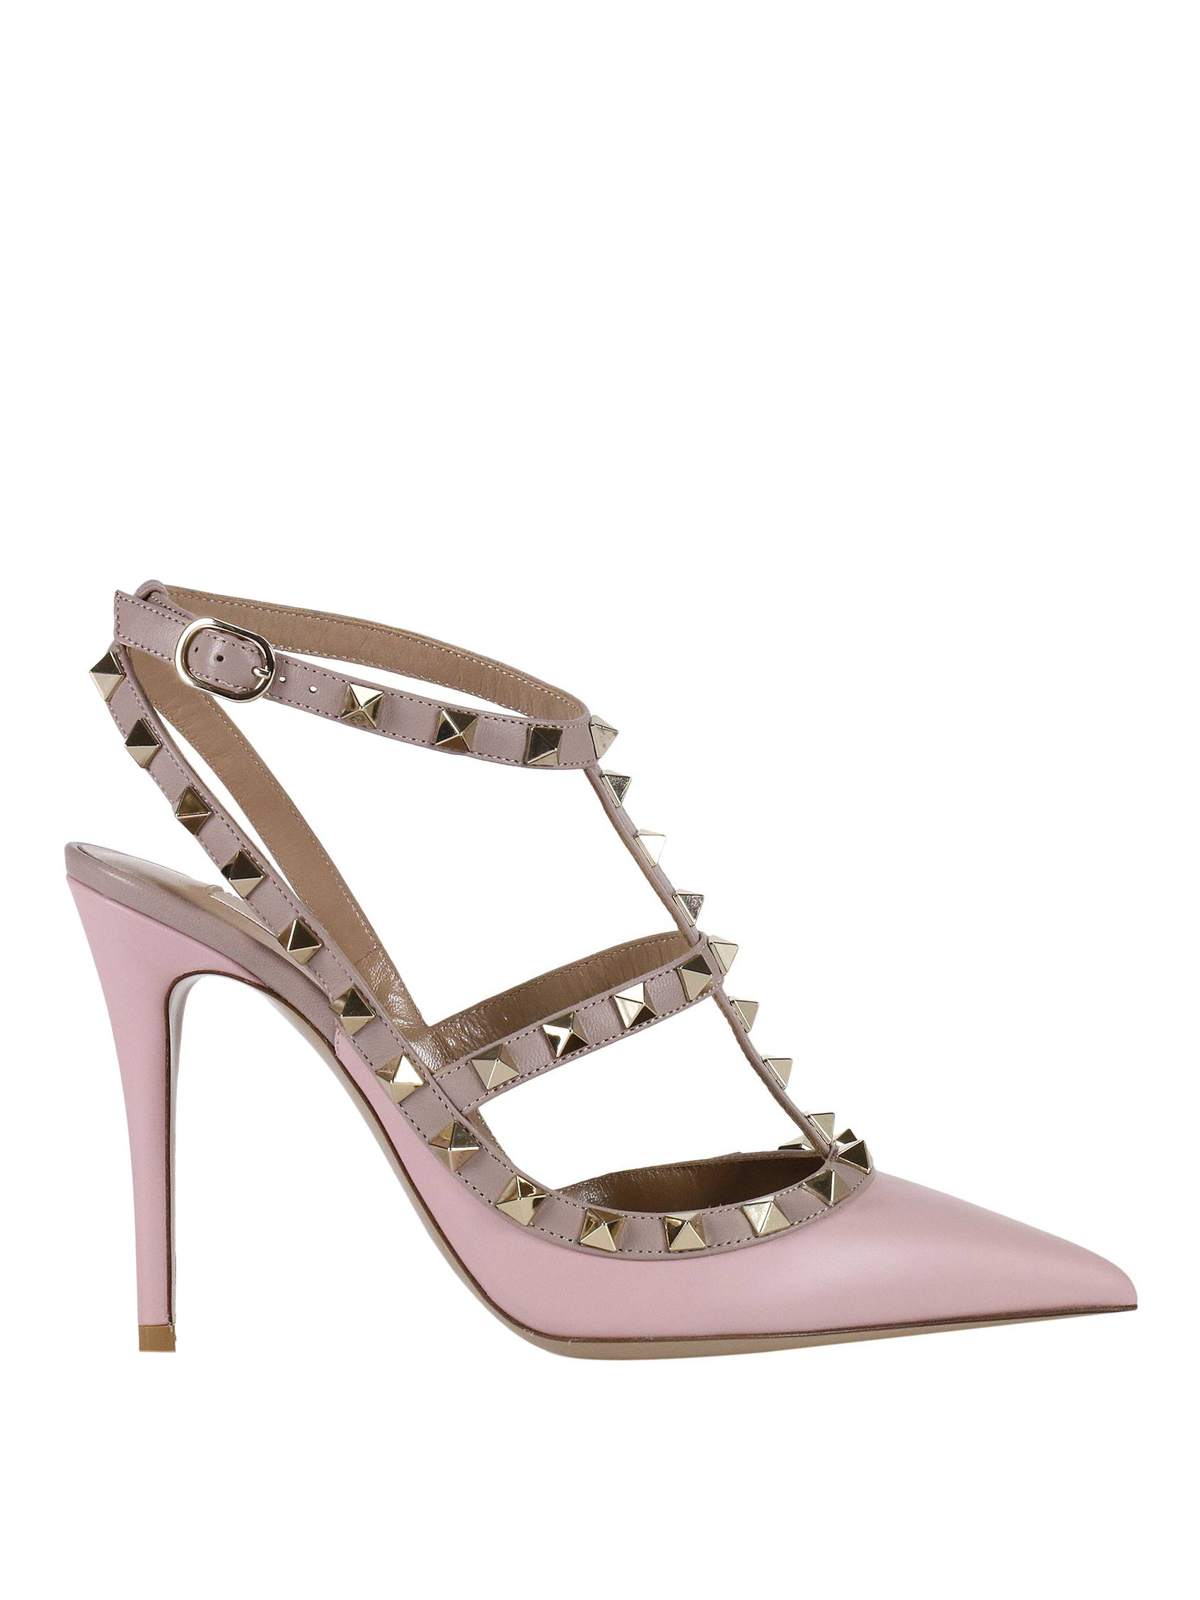 Valentino Garavani Rockstud Shoes On Sale